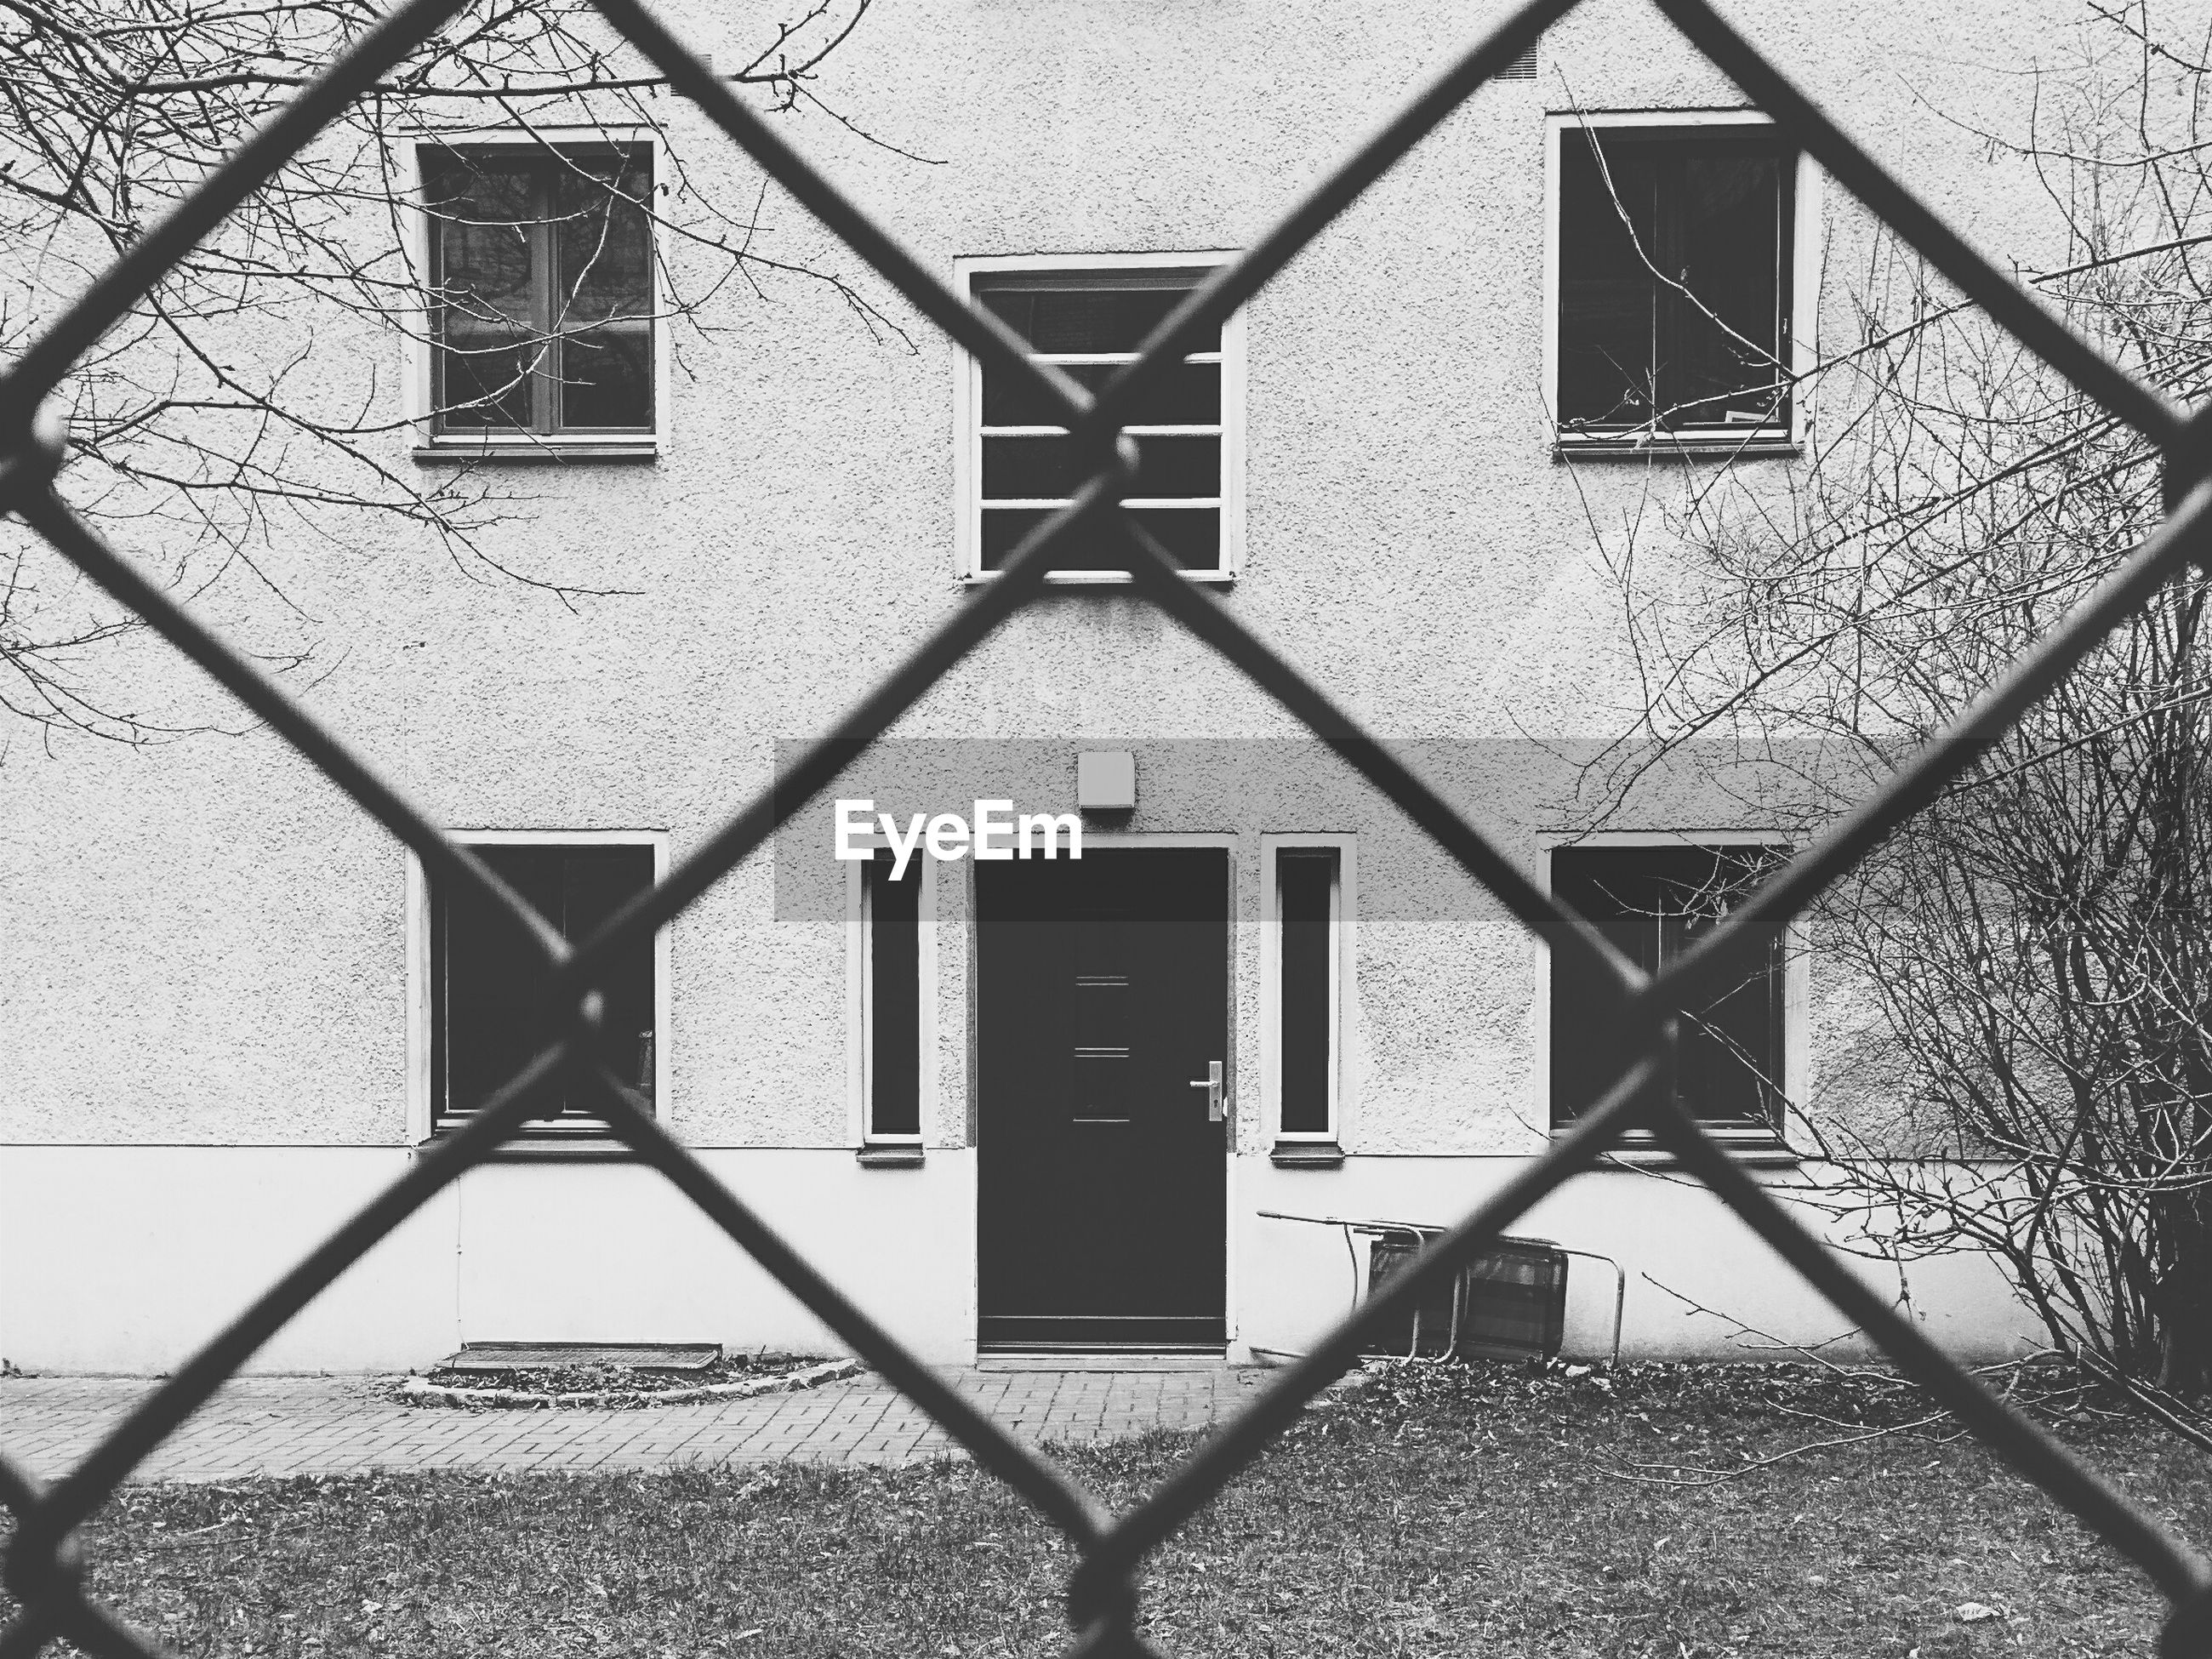 Building seen through chainlink fence